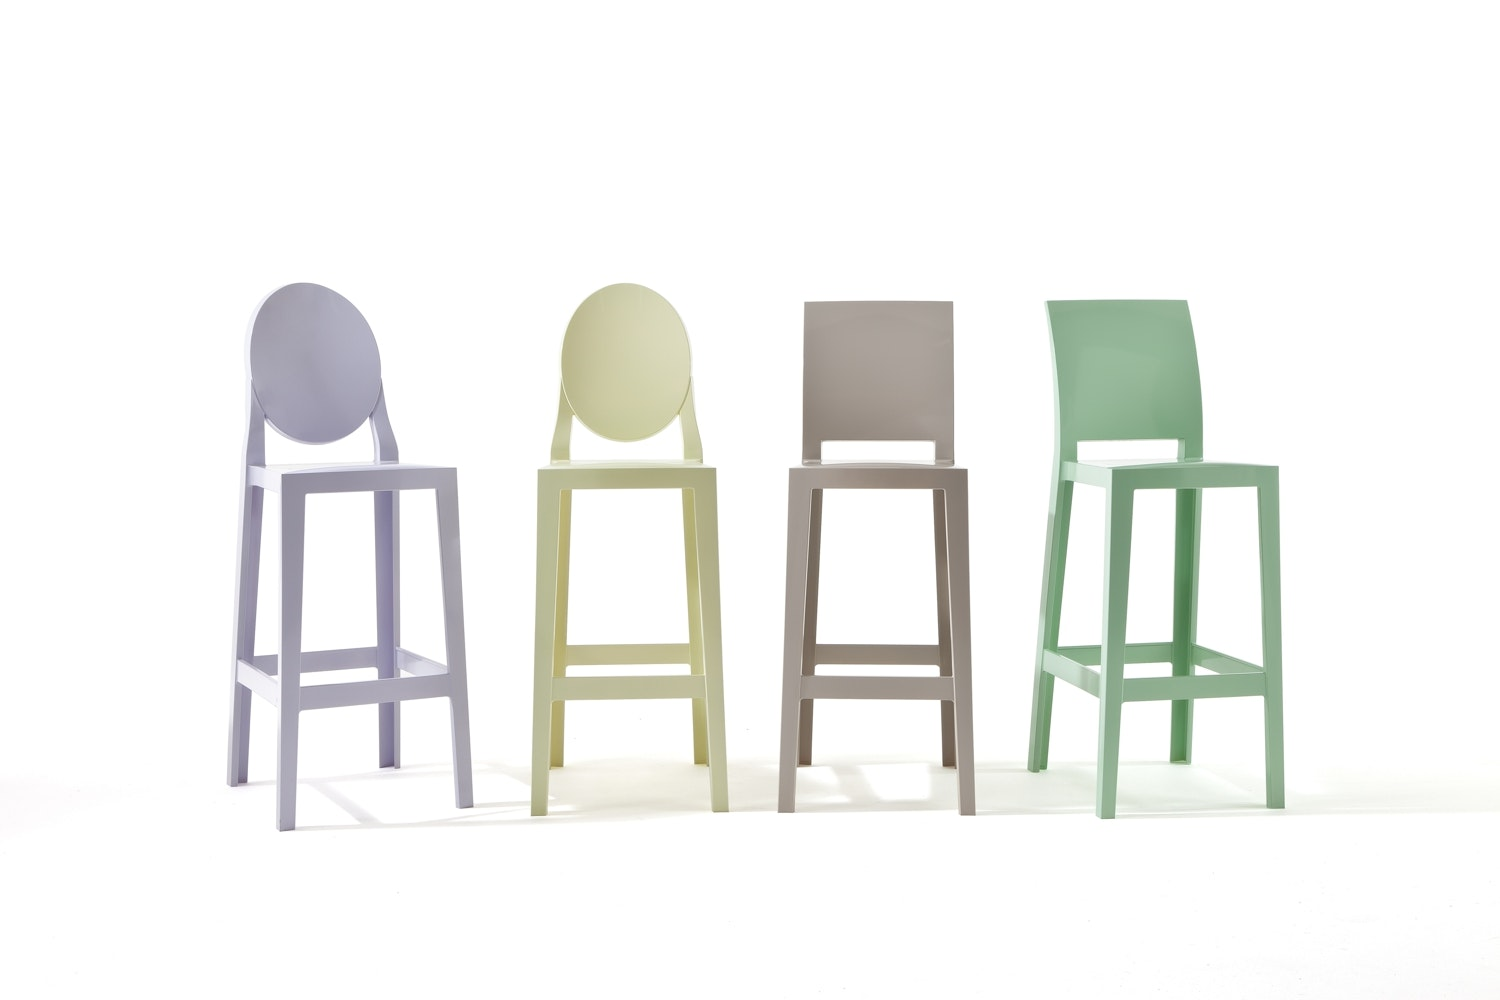 One More High Stool by Philippe Starck for Kartell